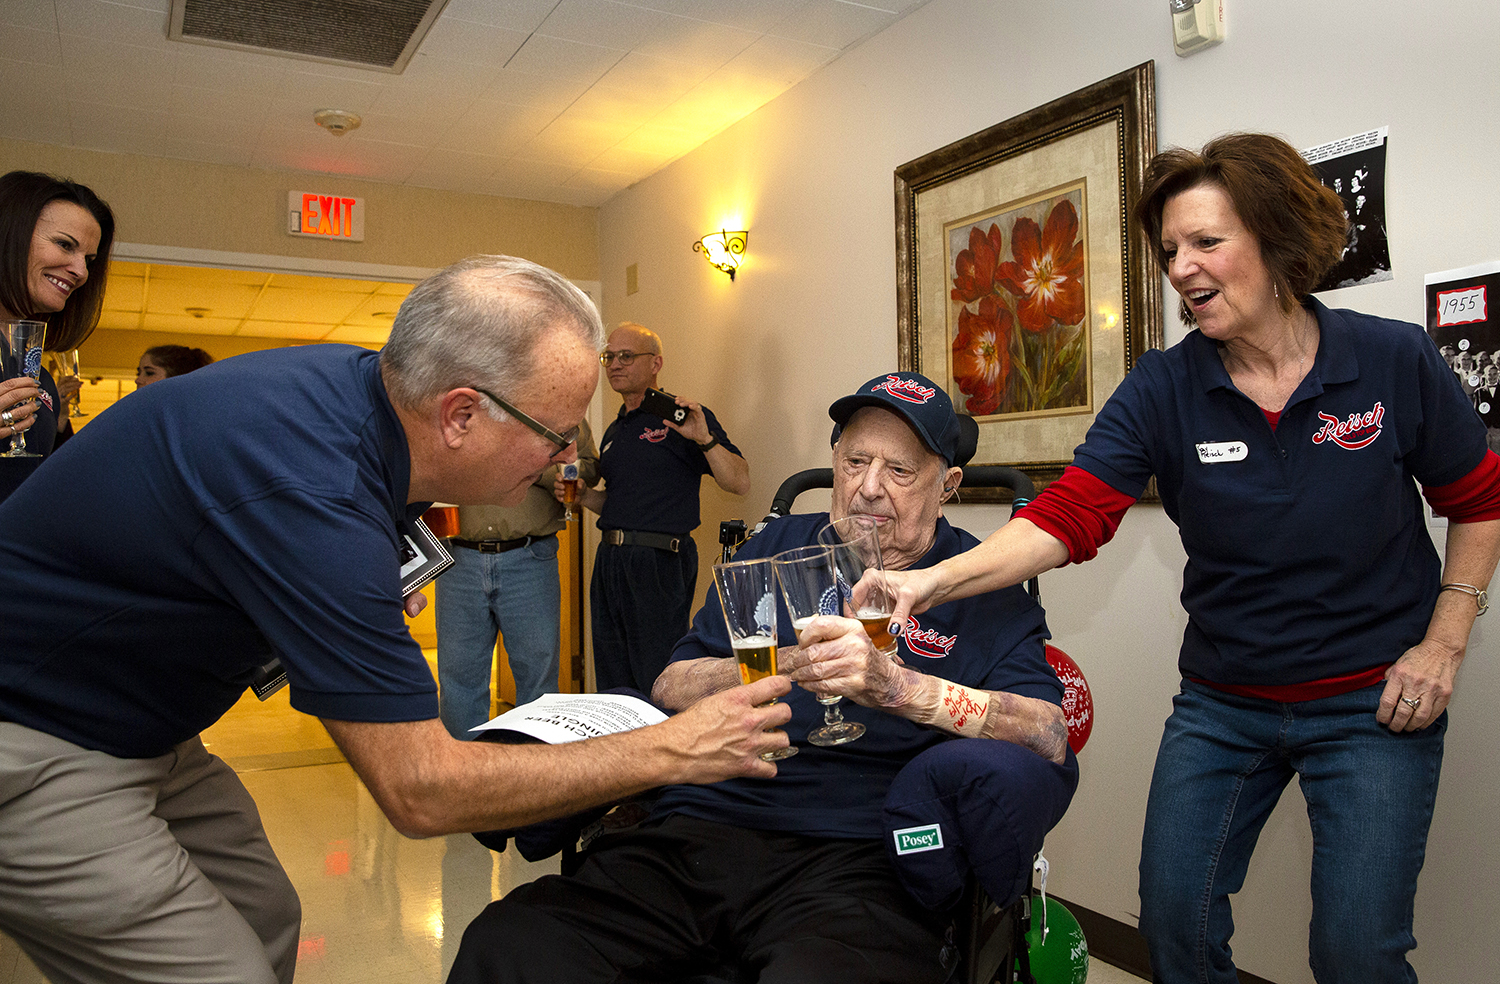 George Reisch and his sister, Kay, toast their dad, Ed Reisch, with Reisch Gold Top beer on his 100th birthday Saturday, March 2, 2019 at a health care facility near St. Louis, Mo. where his lives. Ed Reisch was the last brewmaster of the Reisch Brewing Co., once located on North Rutledge Street in Springfield, and a the re-release of the brewery's most popular beer was also part of the celebration. Ed Reisch got a sip for the first time in more than 50 years. [Rich Saal/The State Journal-Register]